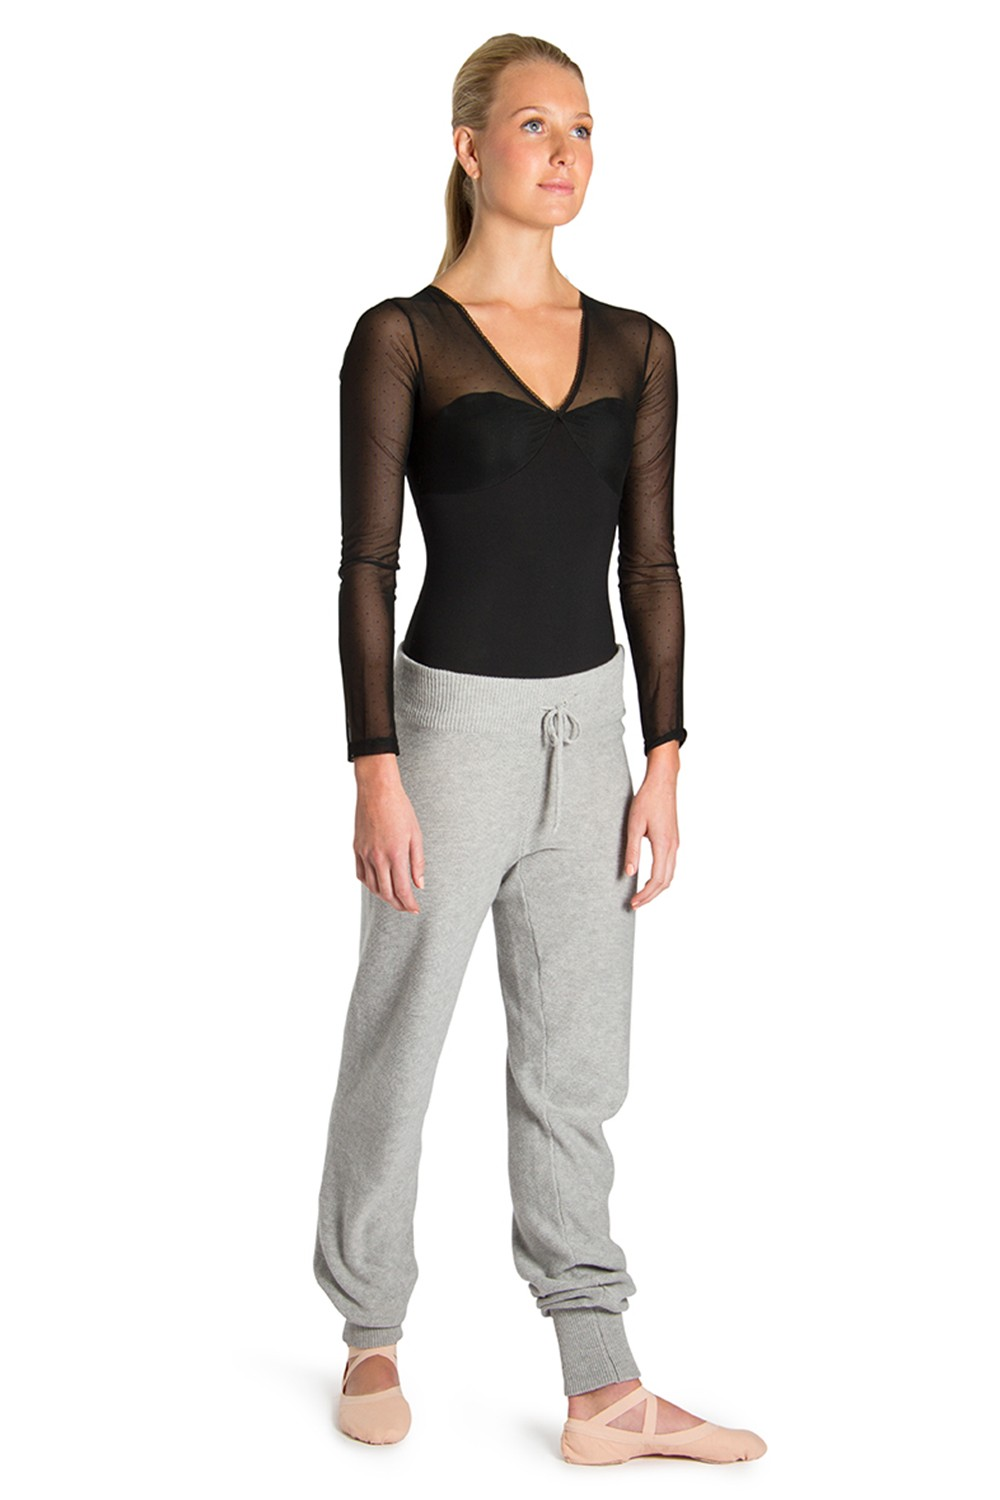 Knitted Sweatpant Women's Dance Warmups